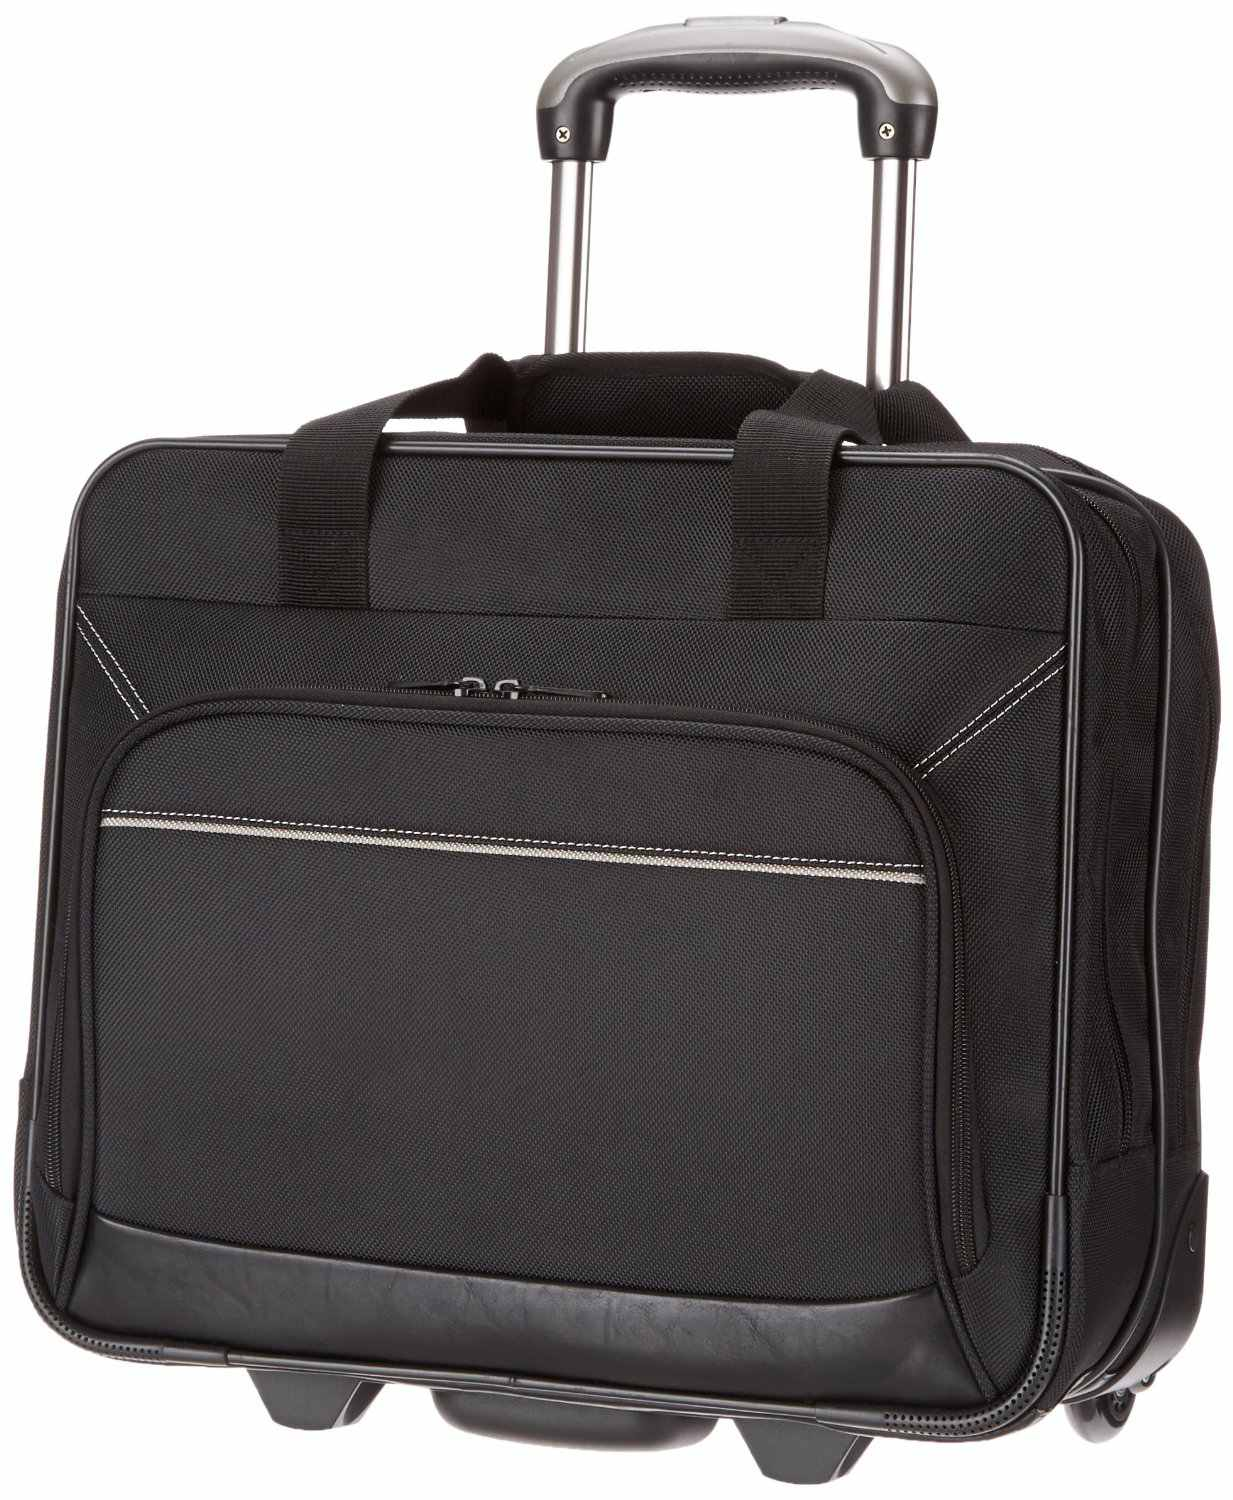 The 8 Best Travel Briefcases of 2019 0cd0c8429ef3b